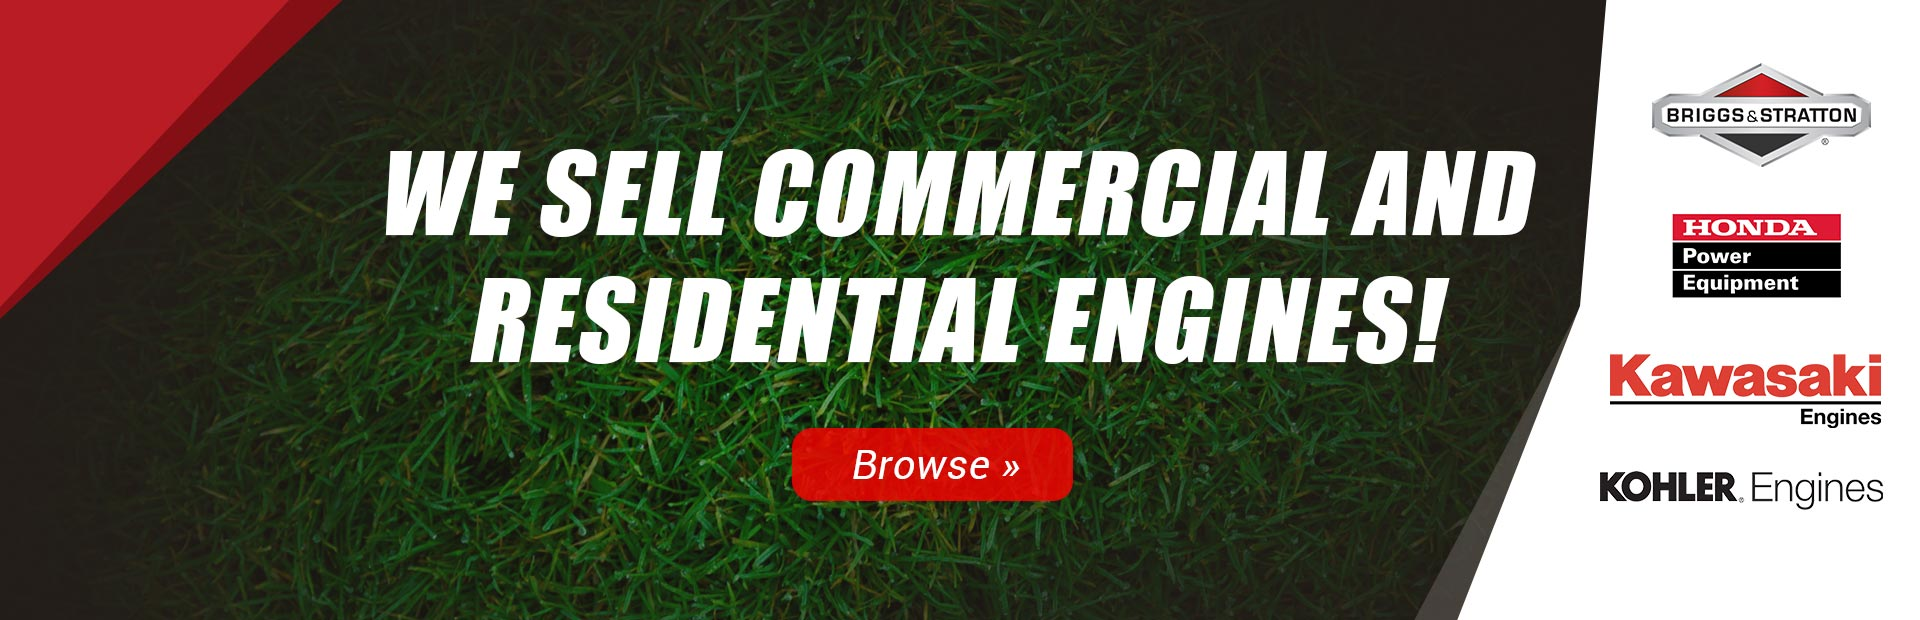 We Sell Commercial and Residential Engines!